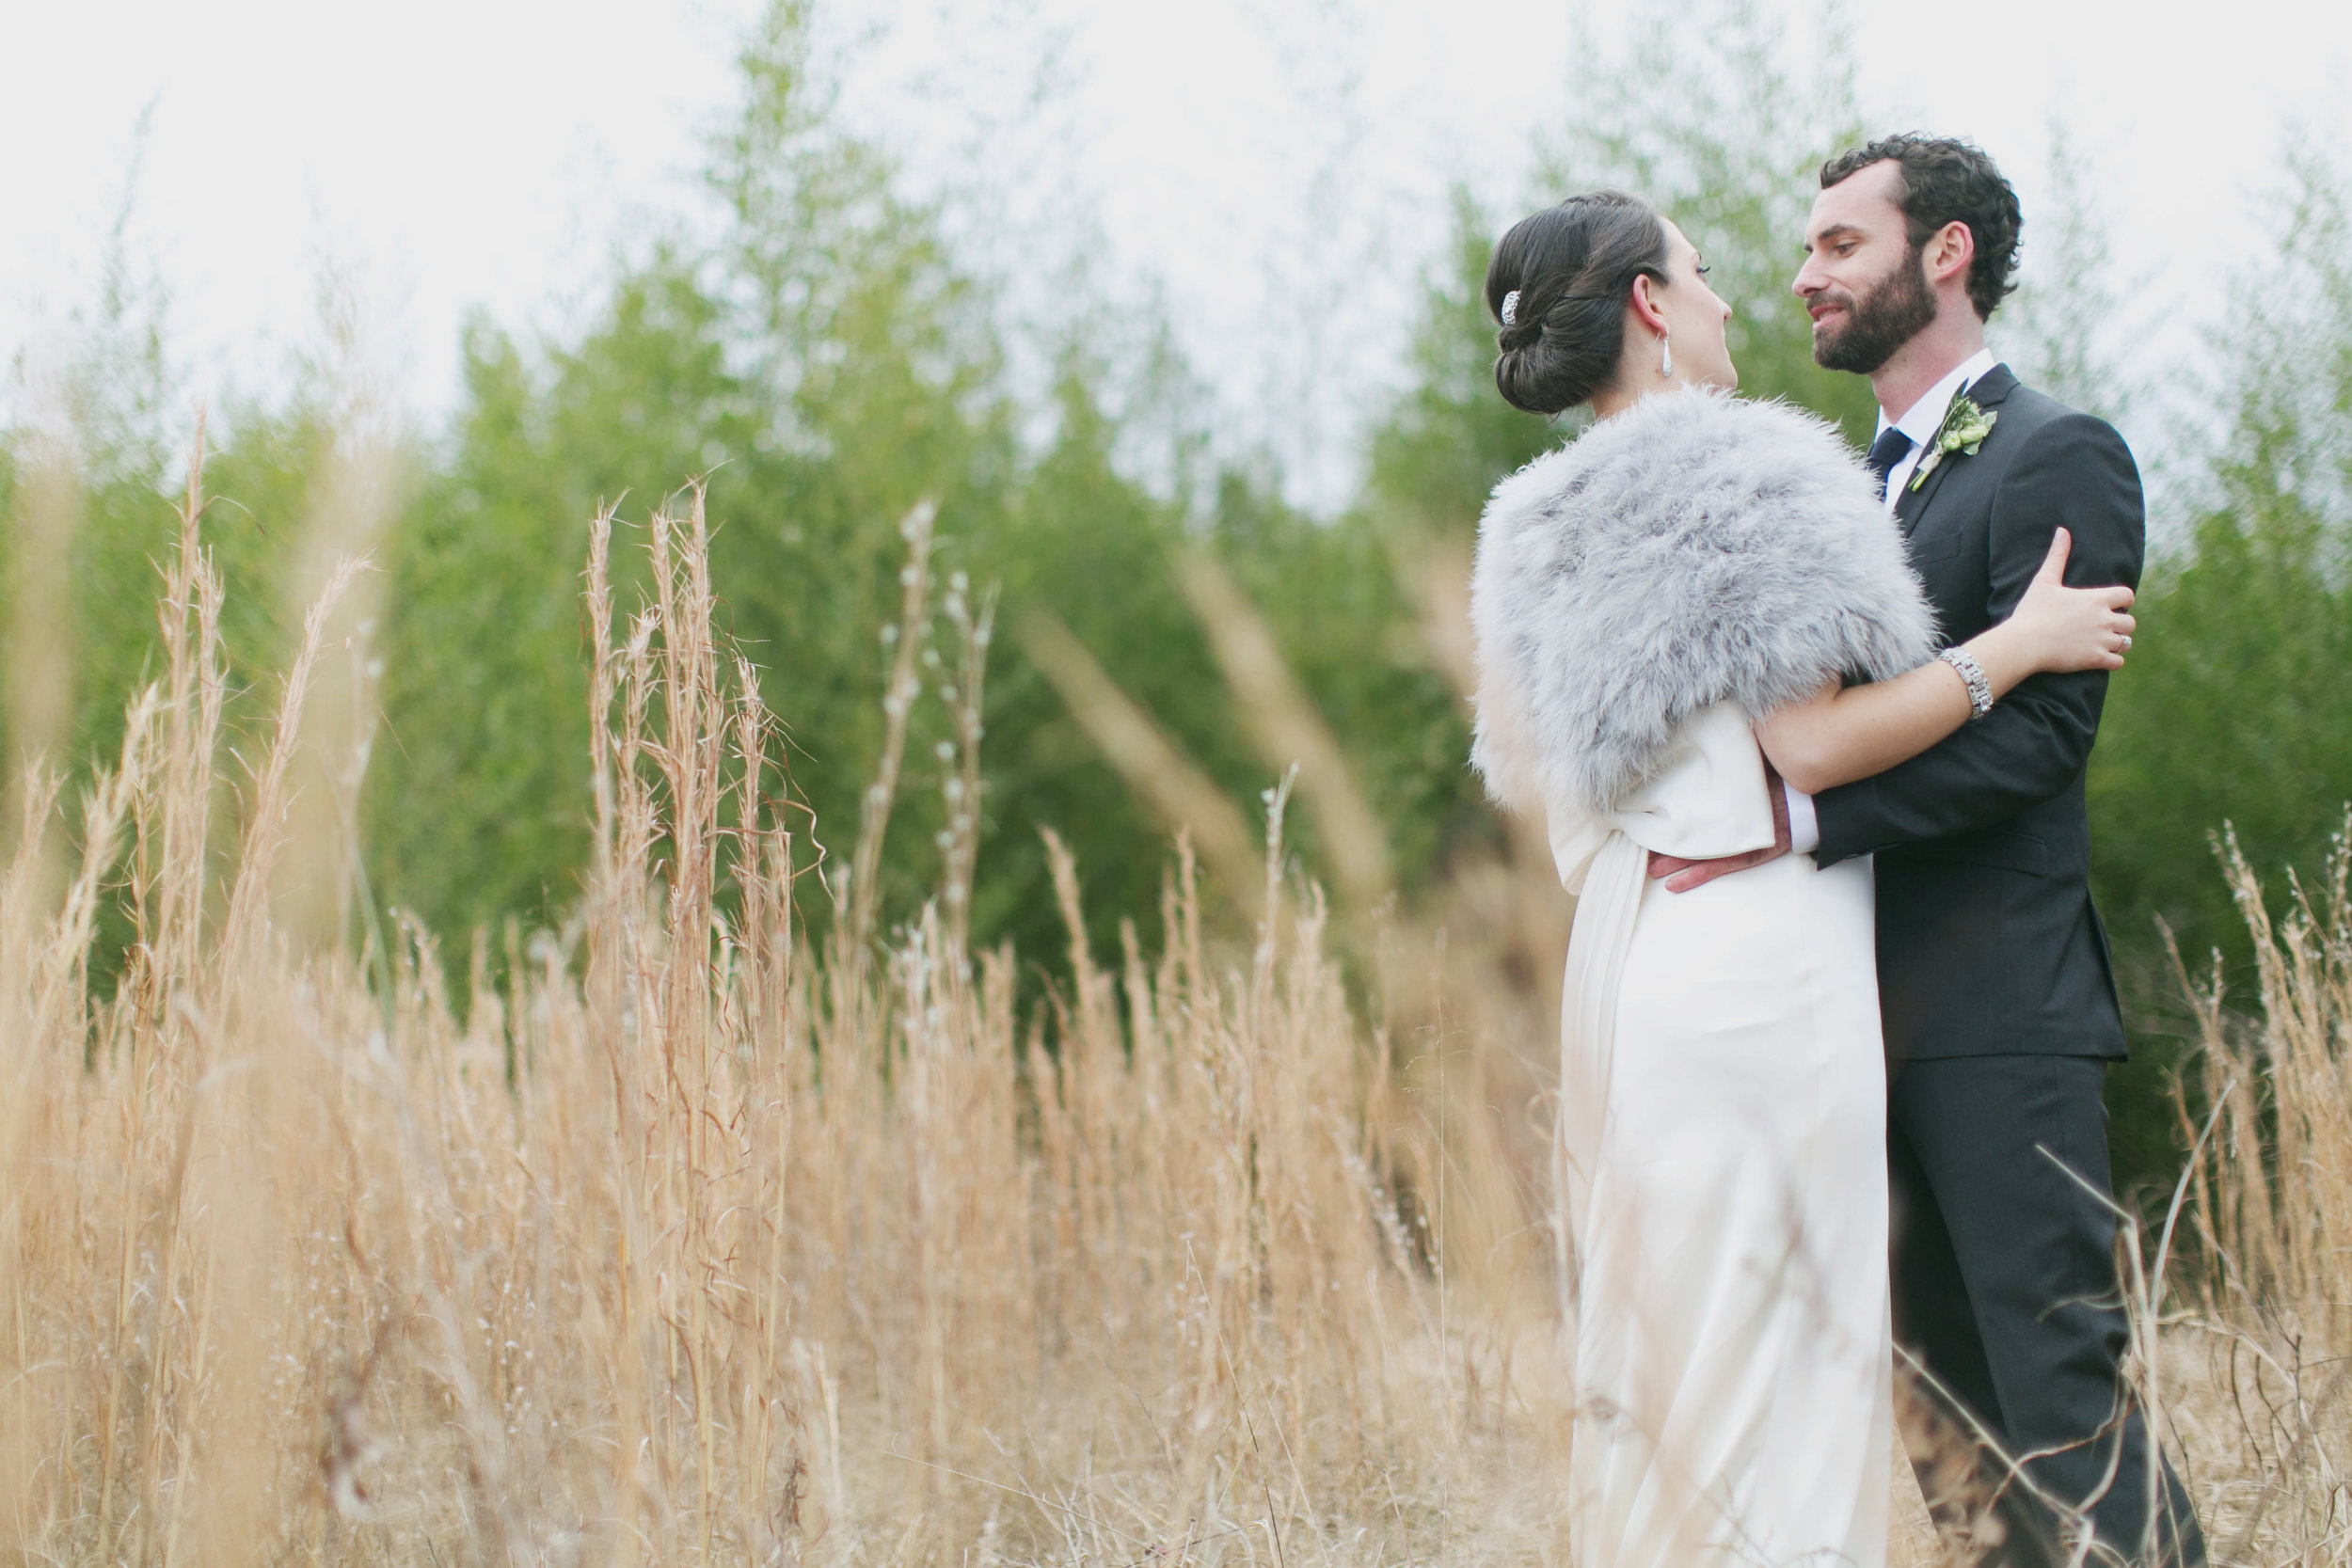 Simply-Charming-Socials_Atlanta-Wedding-Planner_Our-Labor-Of-Love_Emily-and-Jon_10.jpg